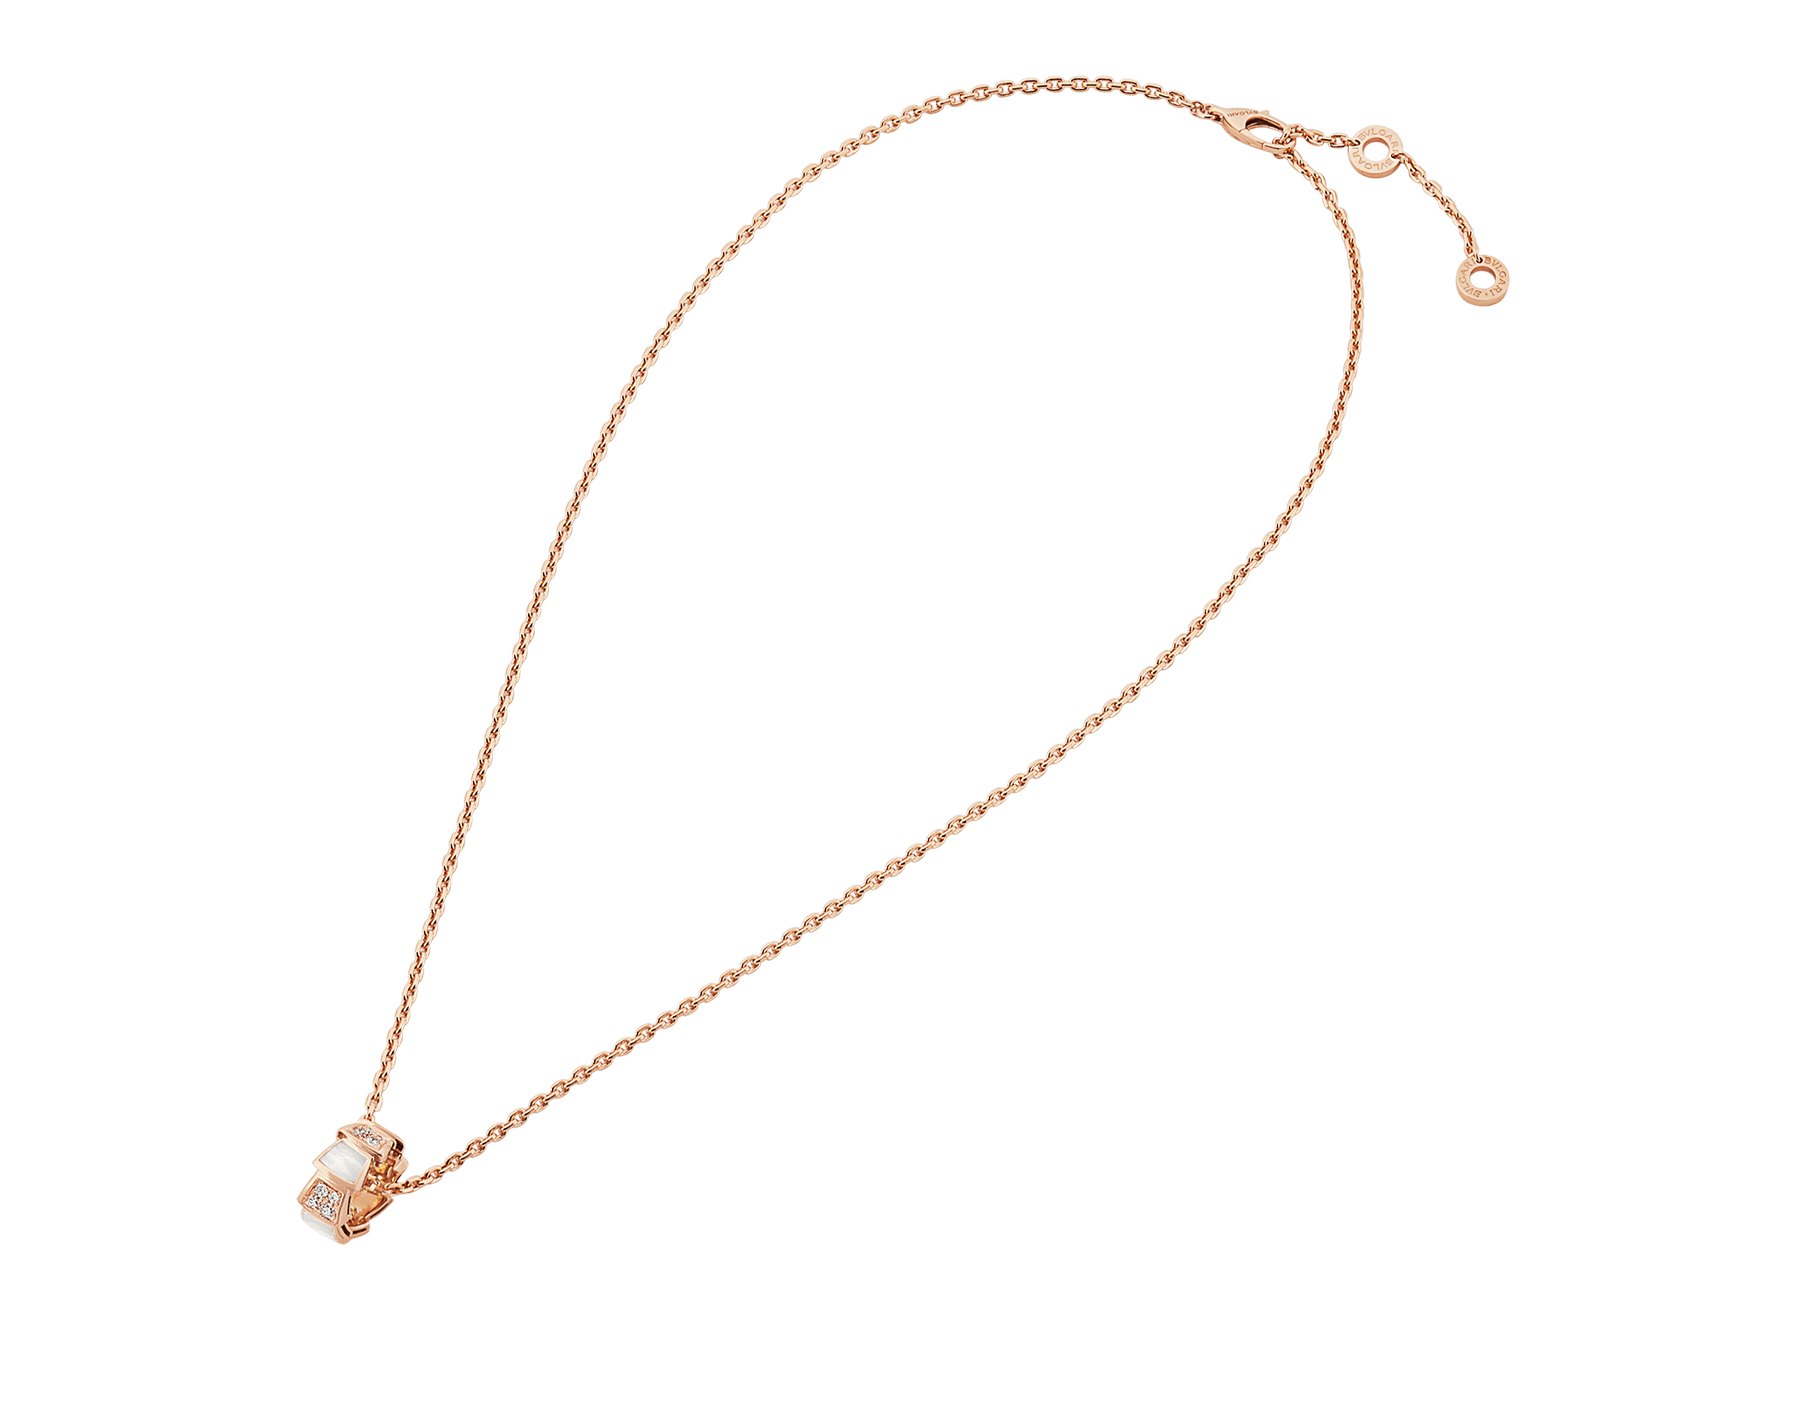 Serpenti Viper 18 kt rose gold necklace set with mother-of-pearl elements and pavé diamonds on the pendant. 357095 image 2